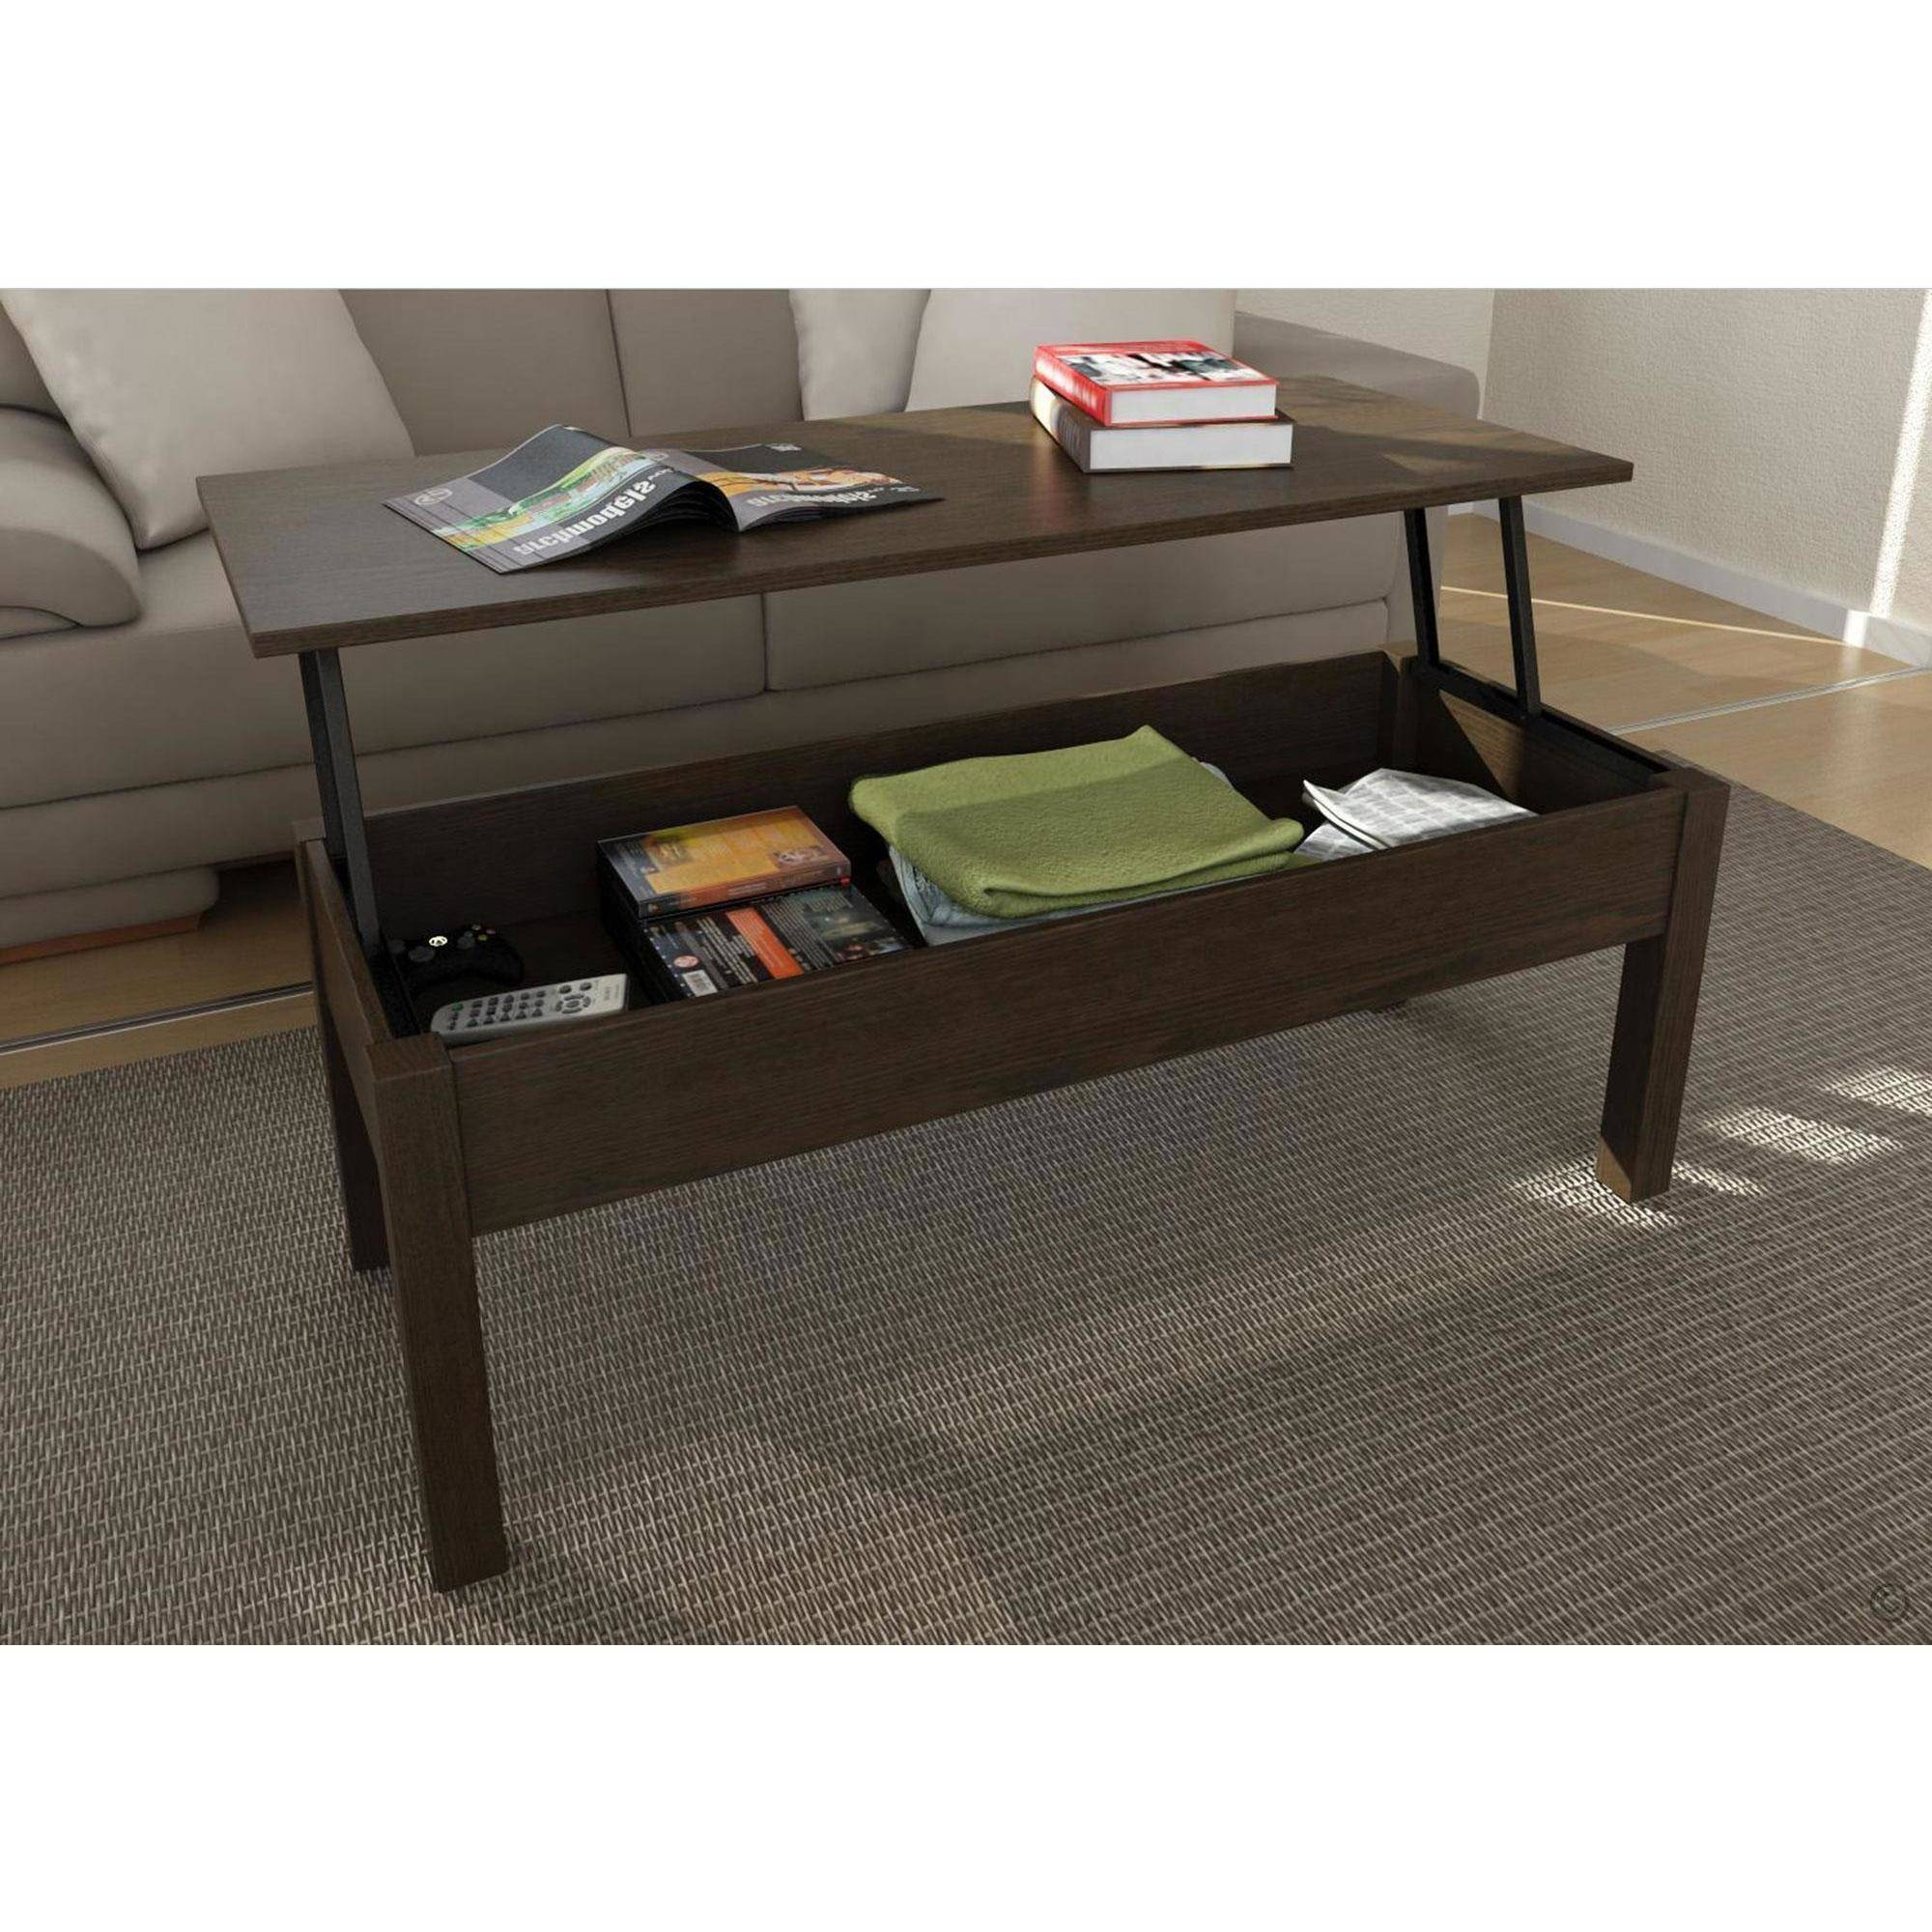 Mainstays Lift-Top Coffee Table, Multiple Colors - Walmart with regard to Desk Coffee Tables (Image 17 of 30)